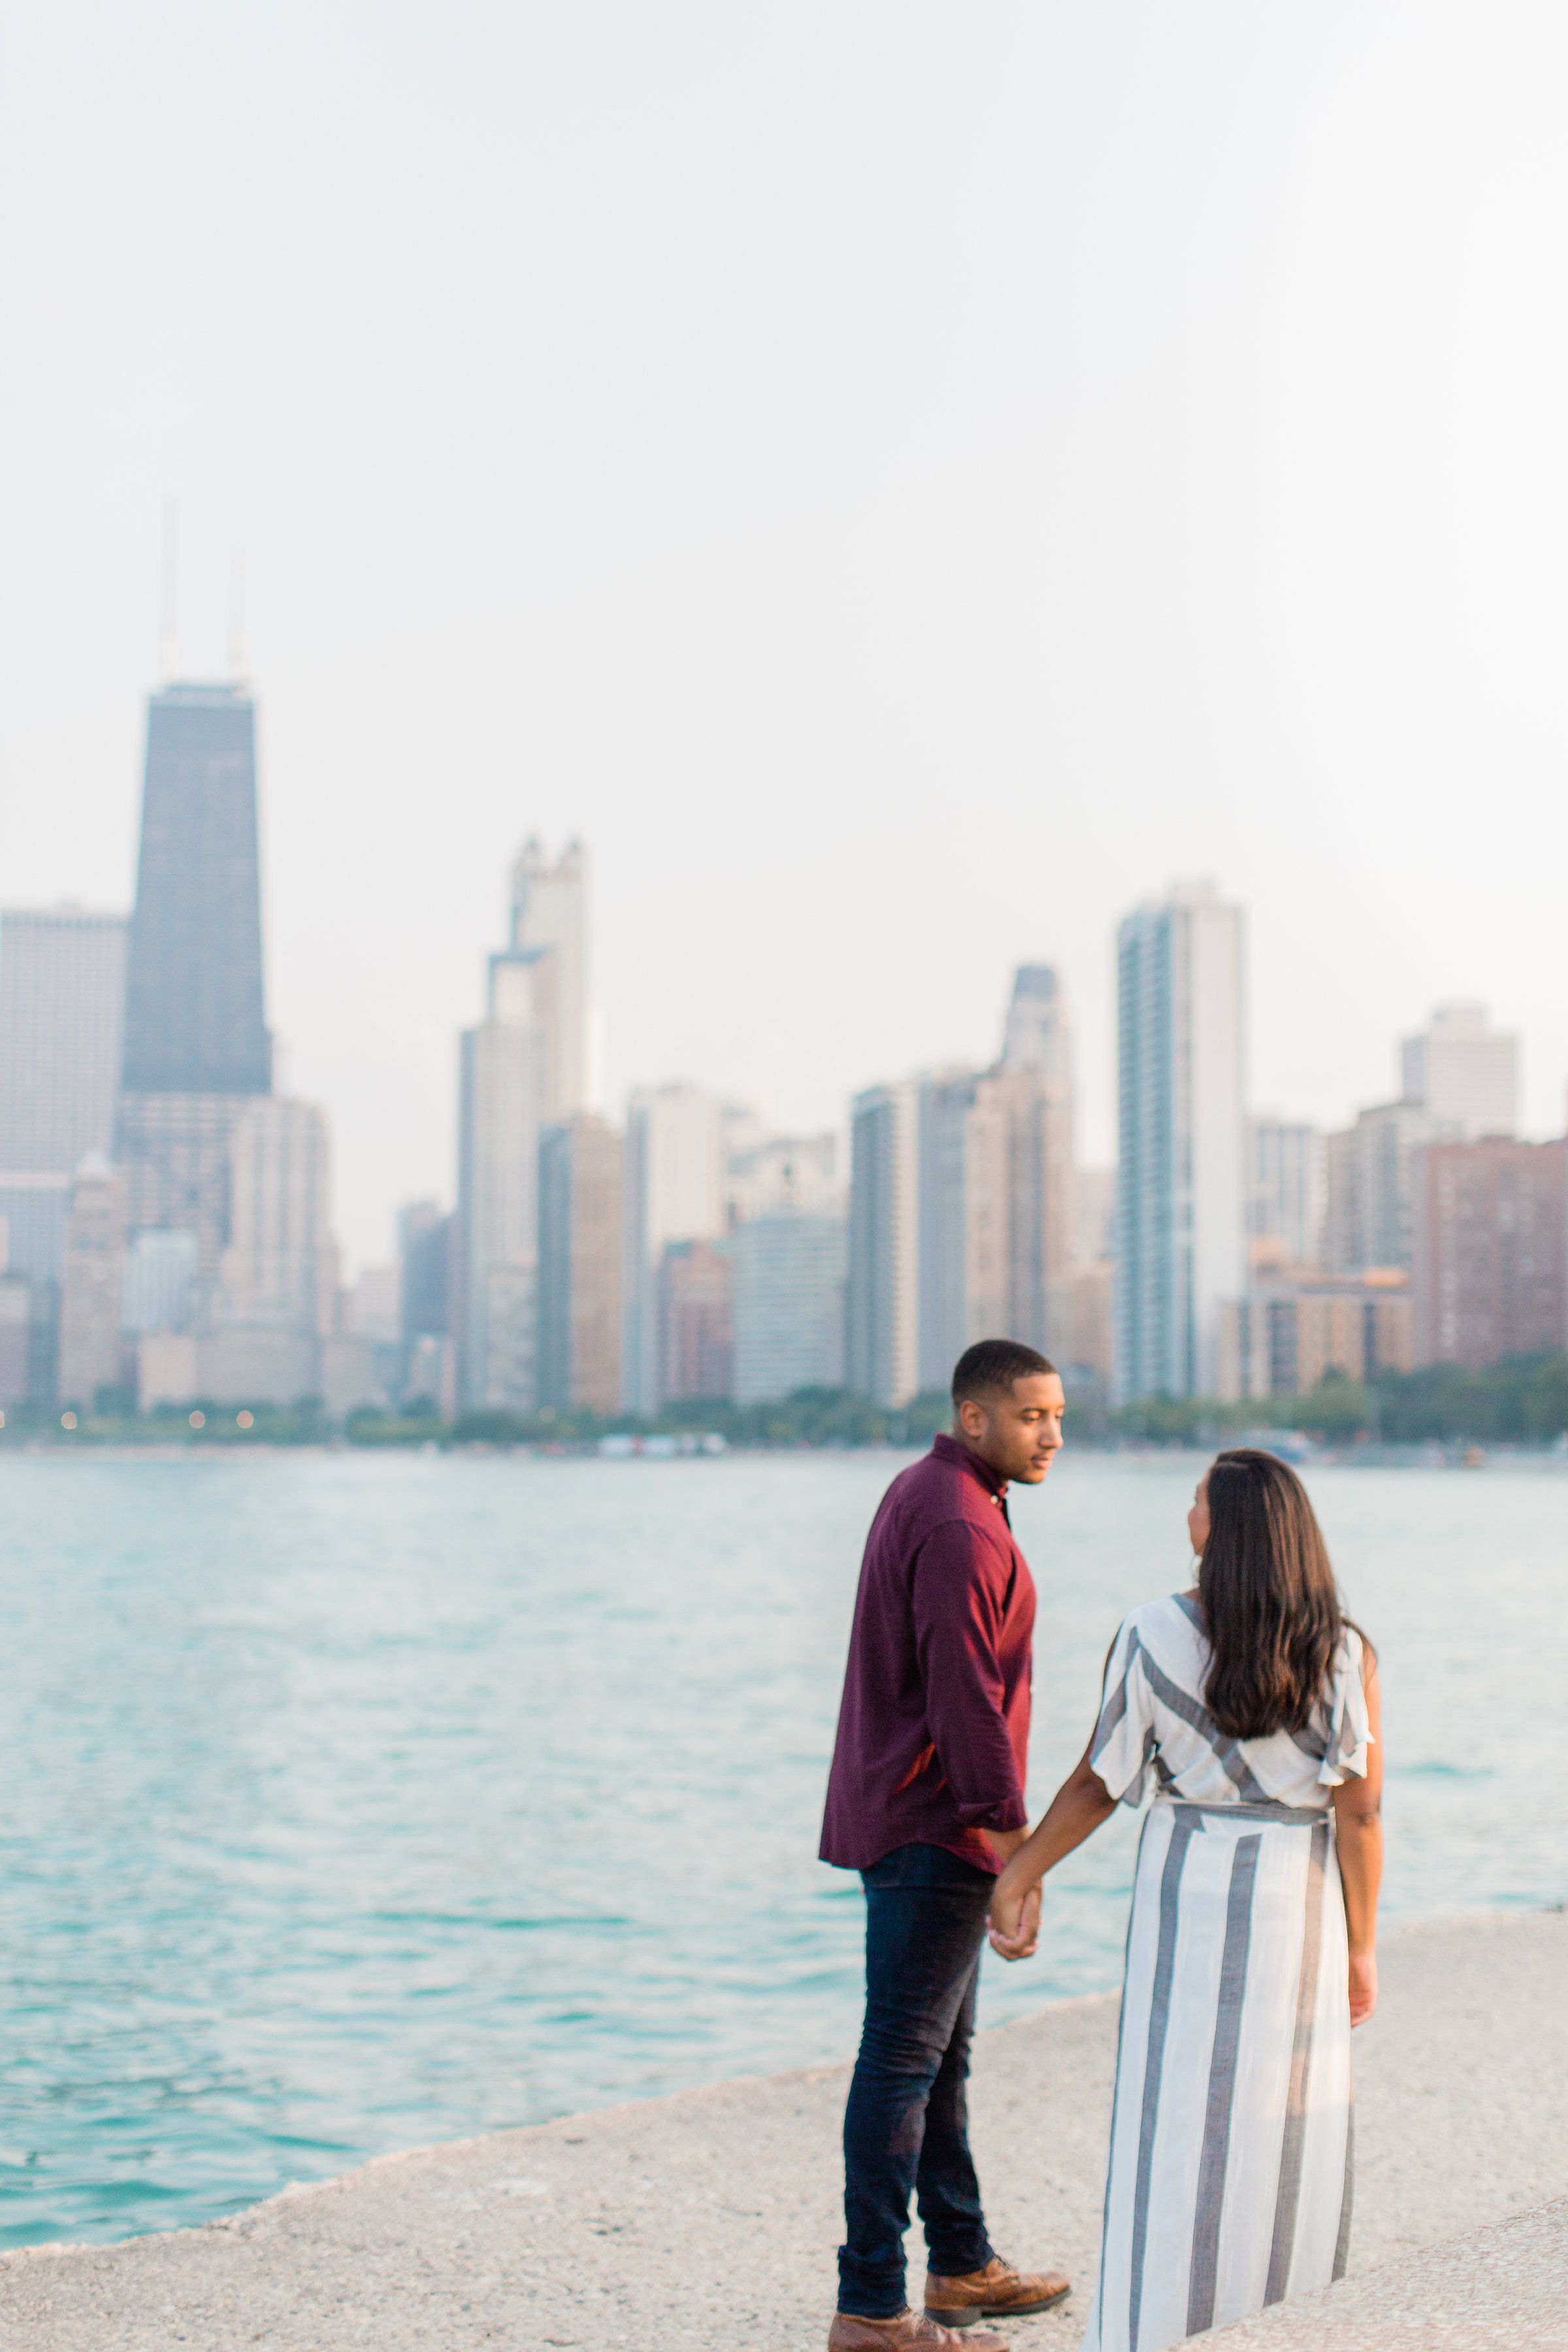 Lincoln Park Engagement Session Photography by Lauryn (26)